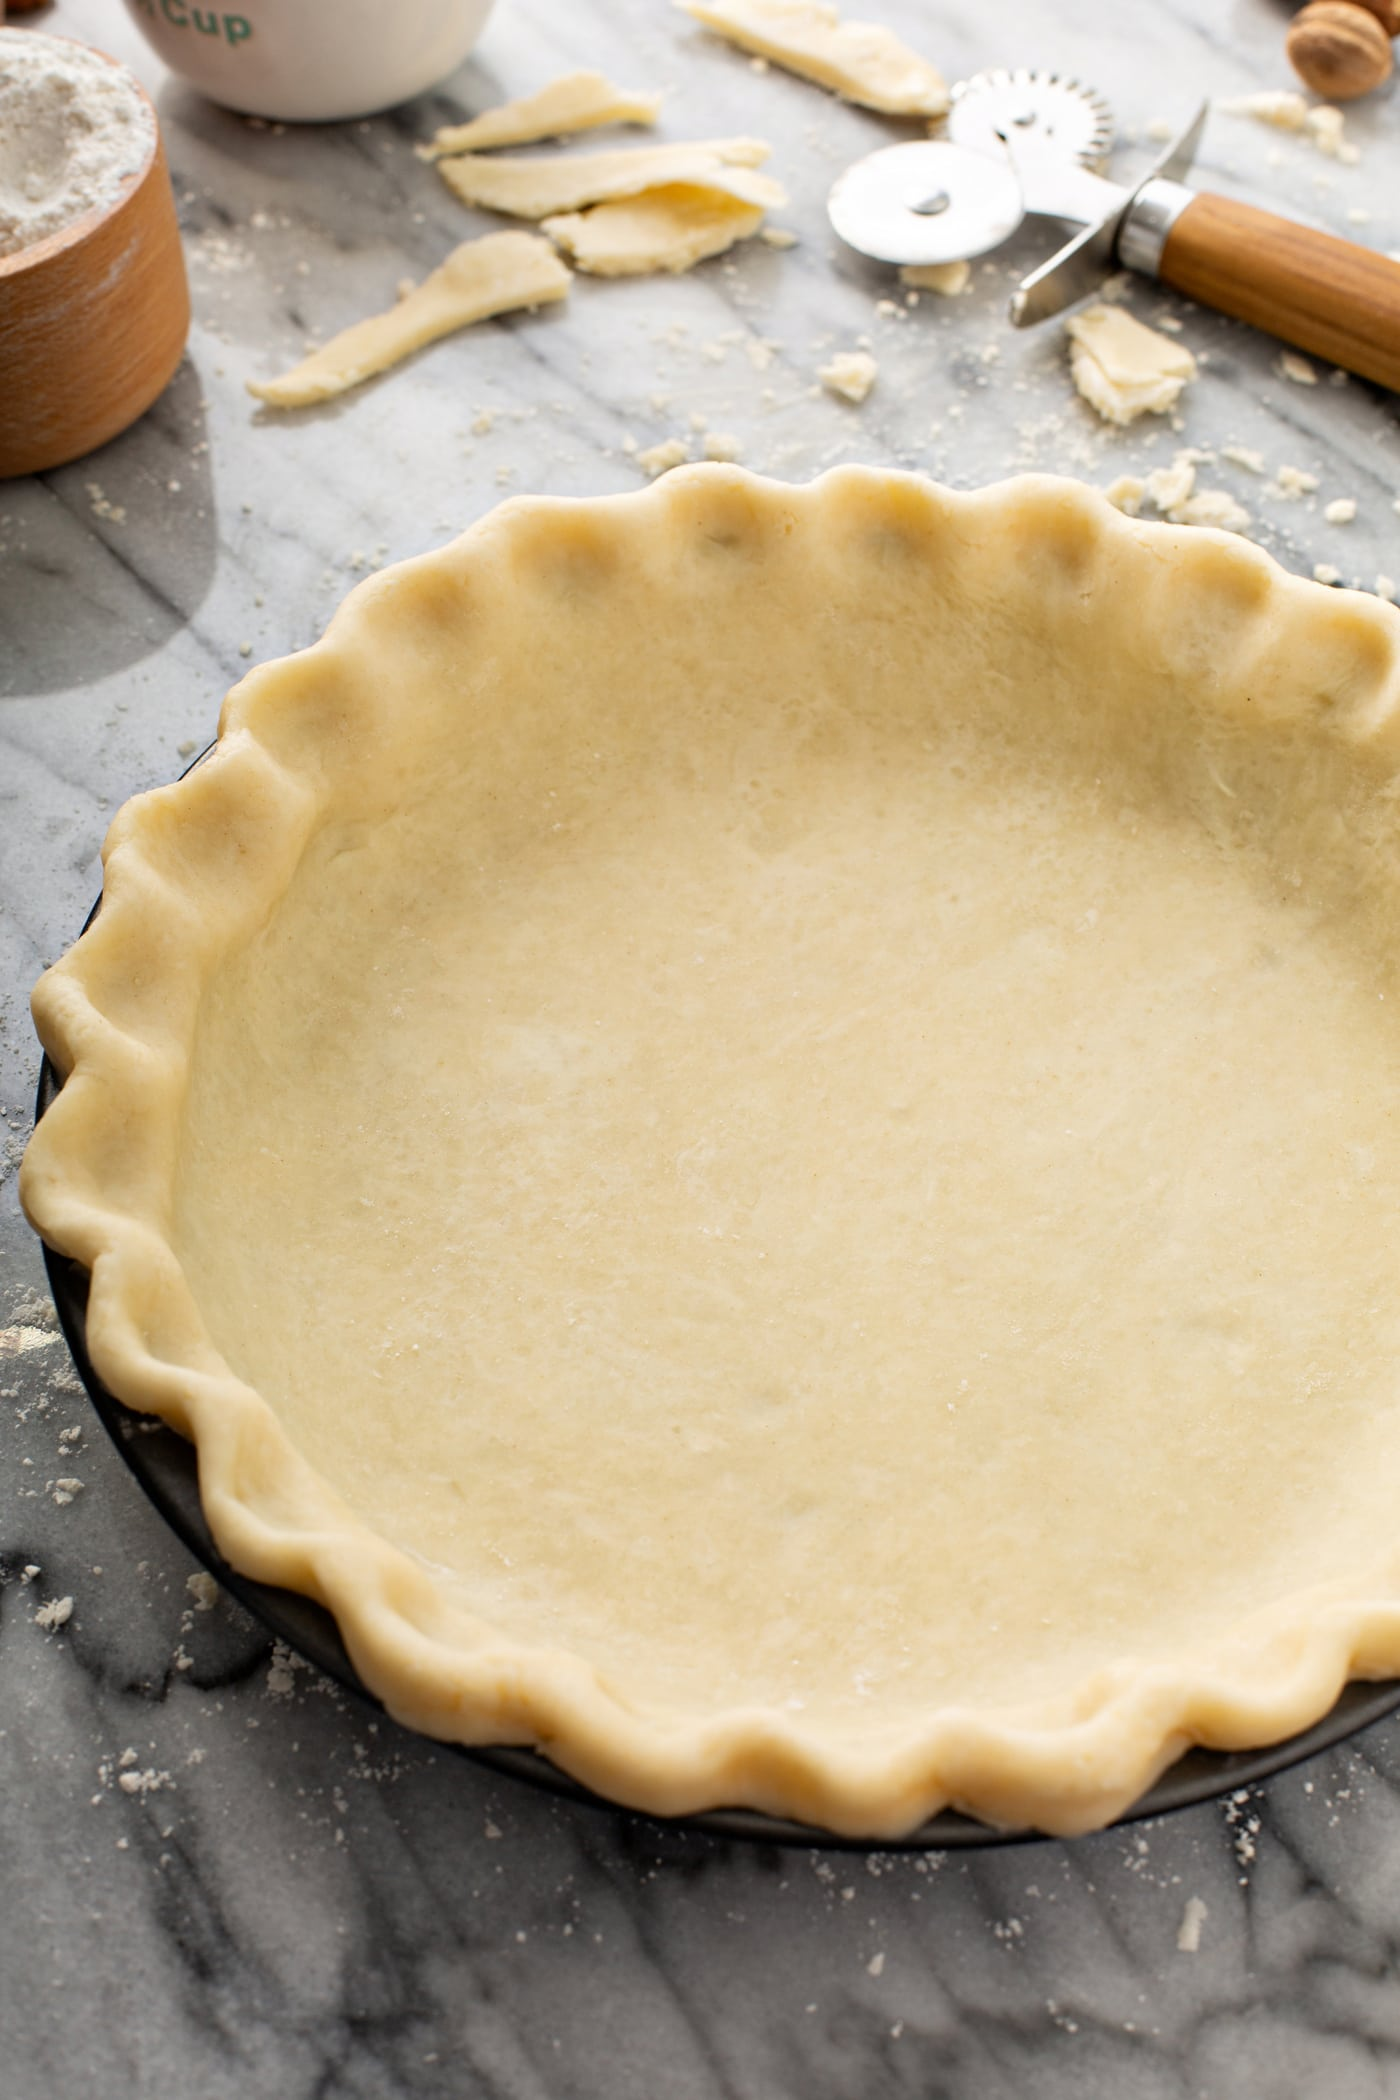 A photo of an uncooked butter pie crust in a pie tin sitting on a table.